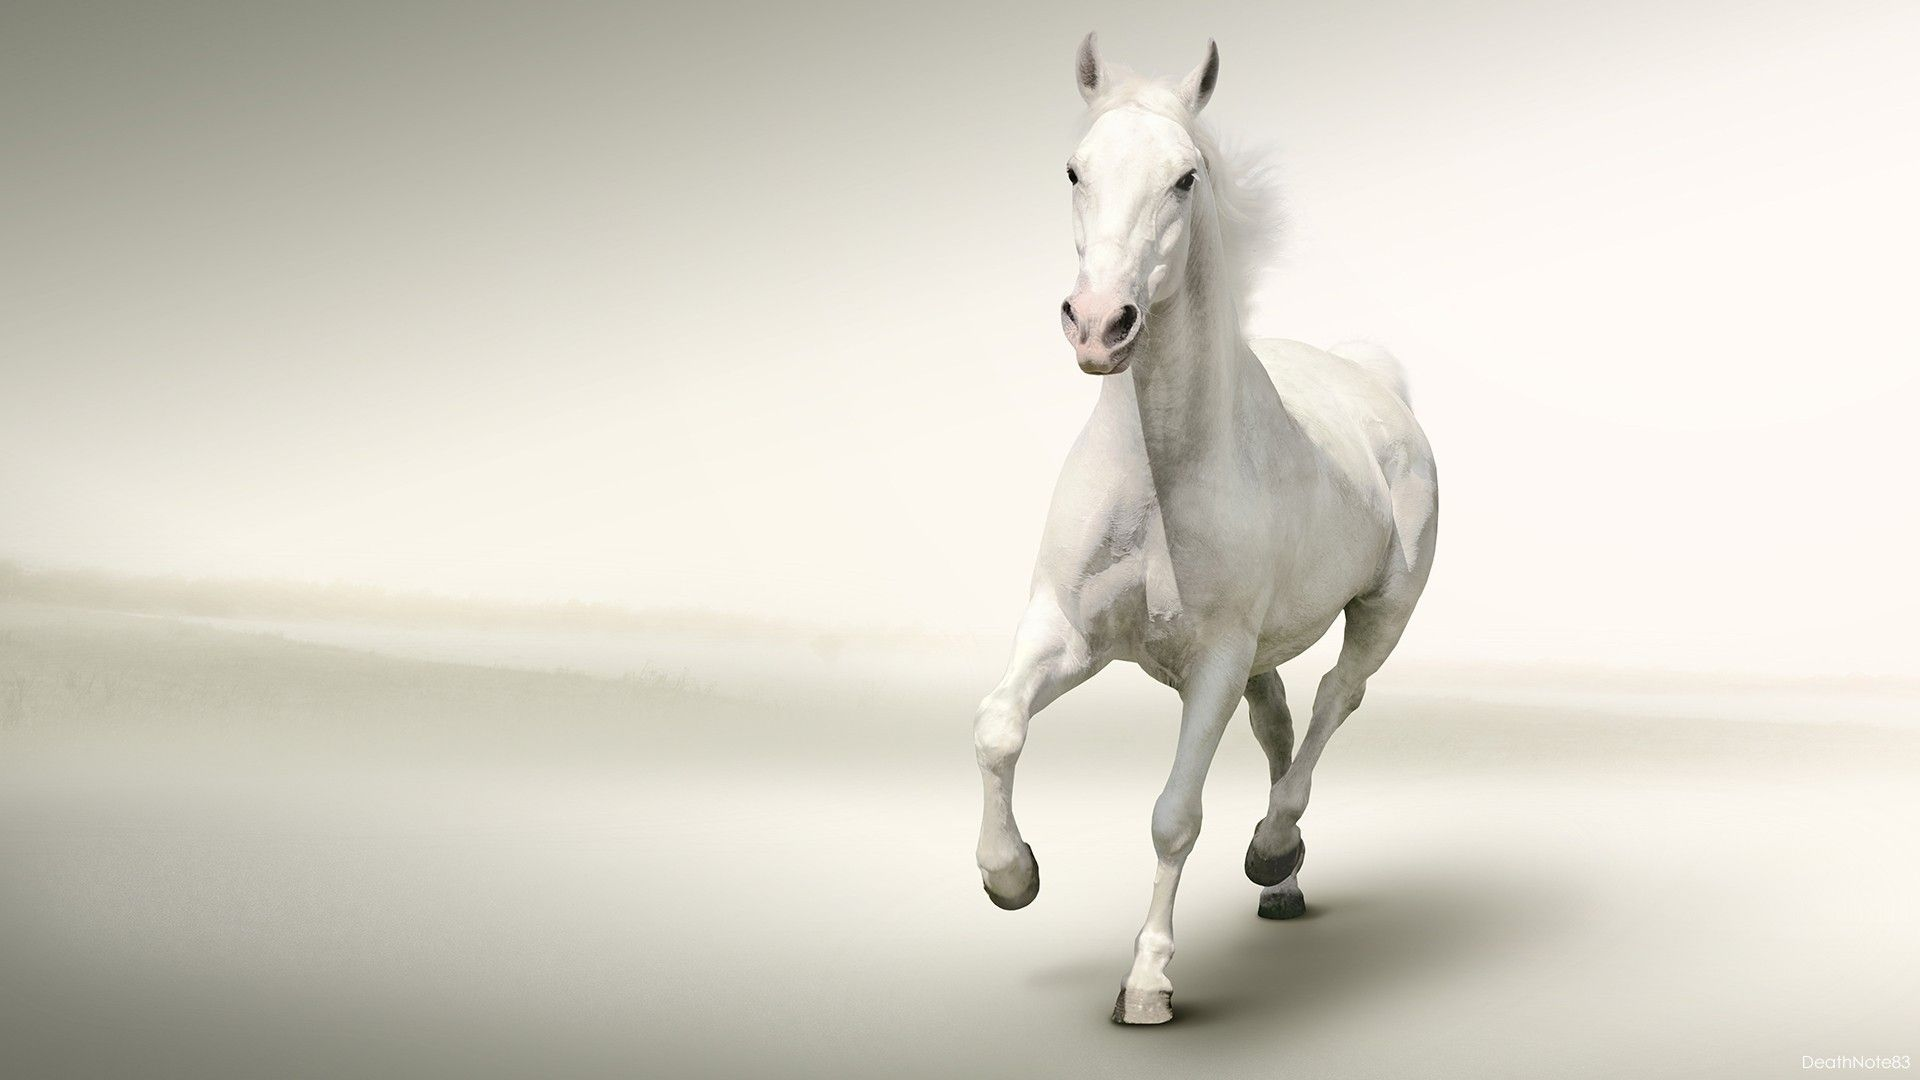 White Horse Running White Background Hd Wallpaper Horses Horse Wallpaper White Background Hd